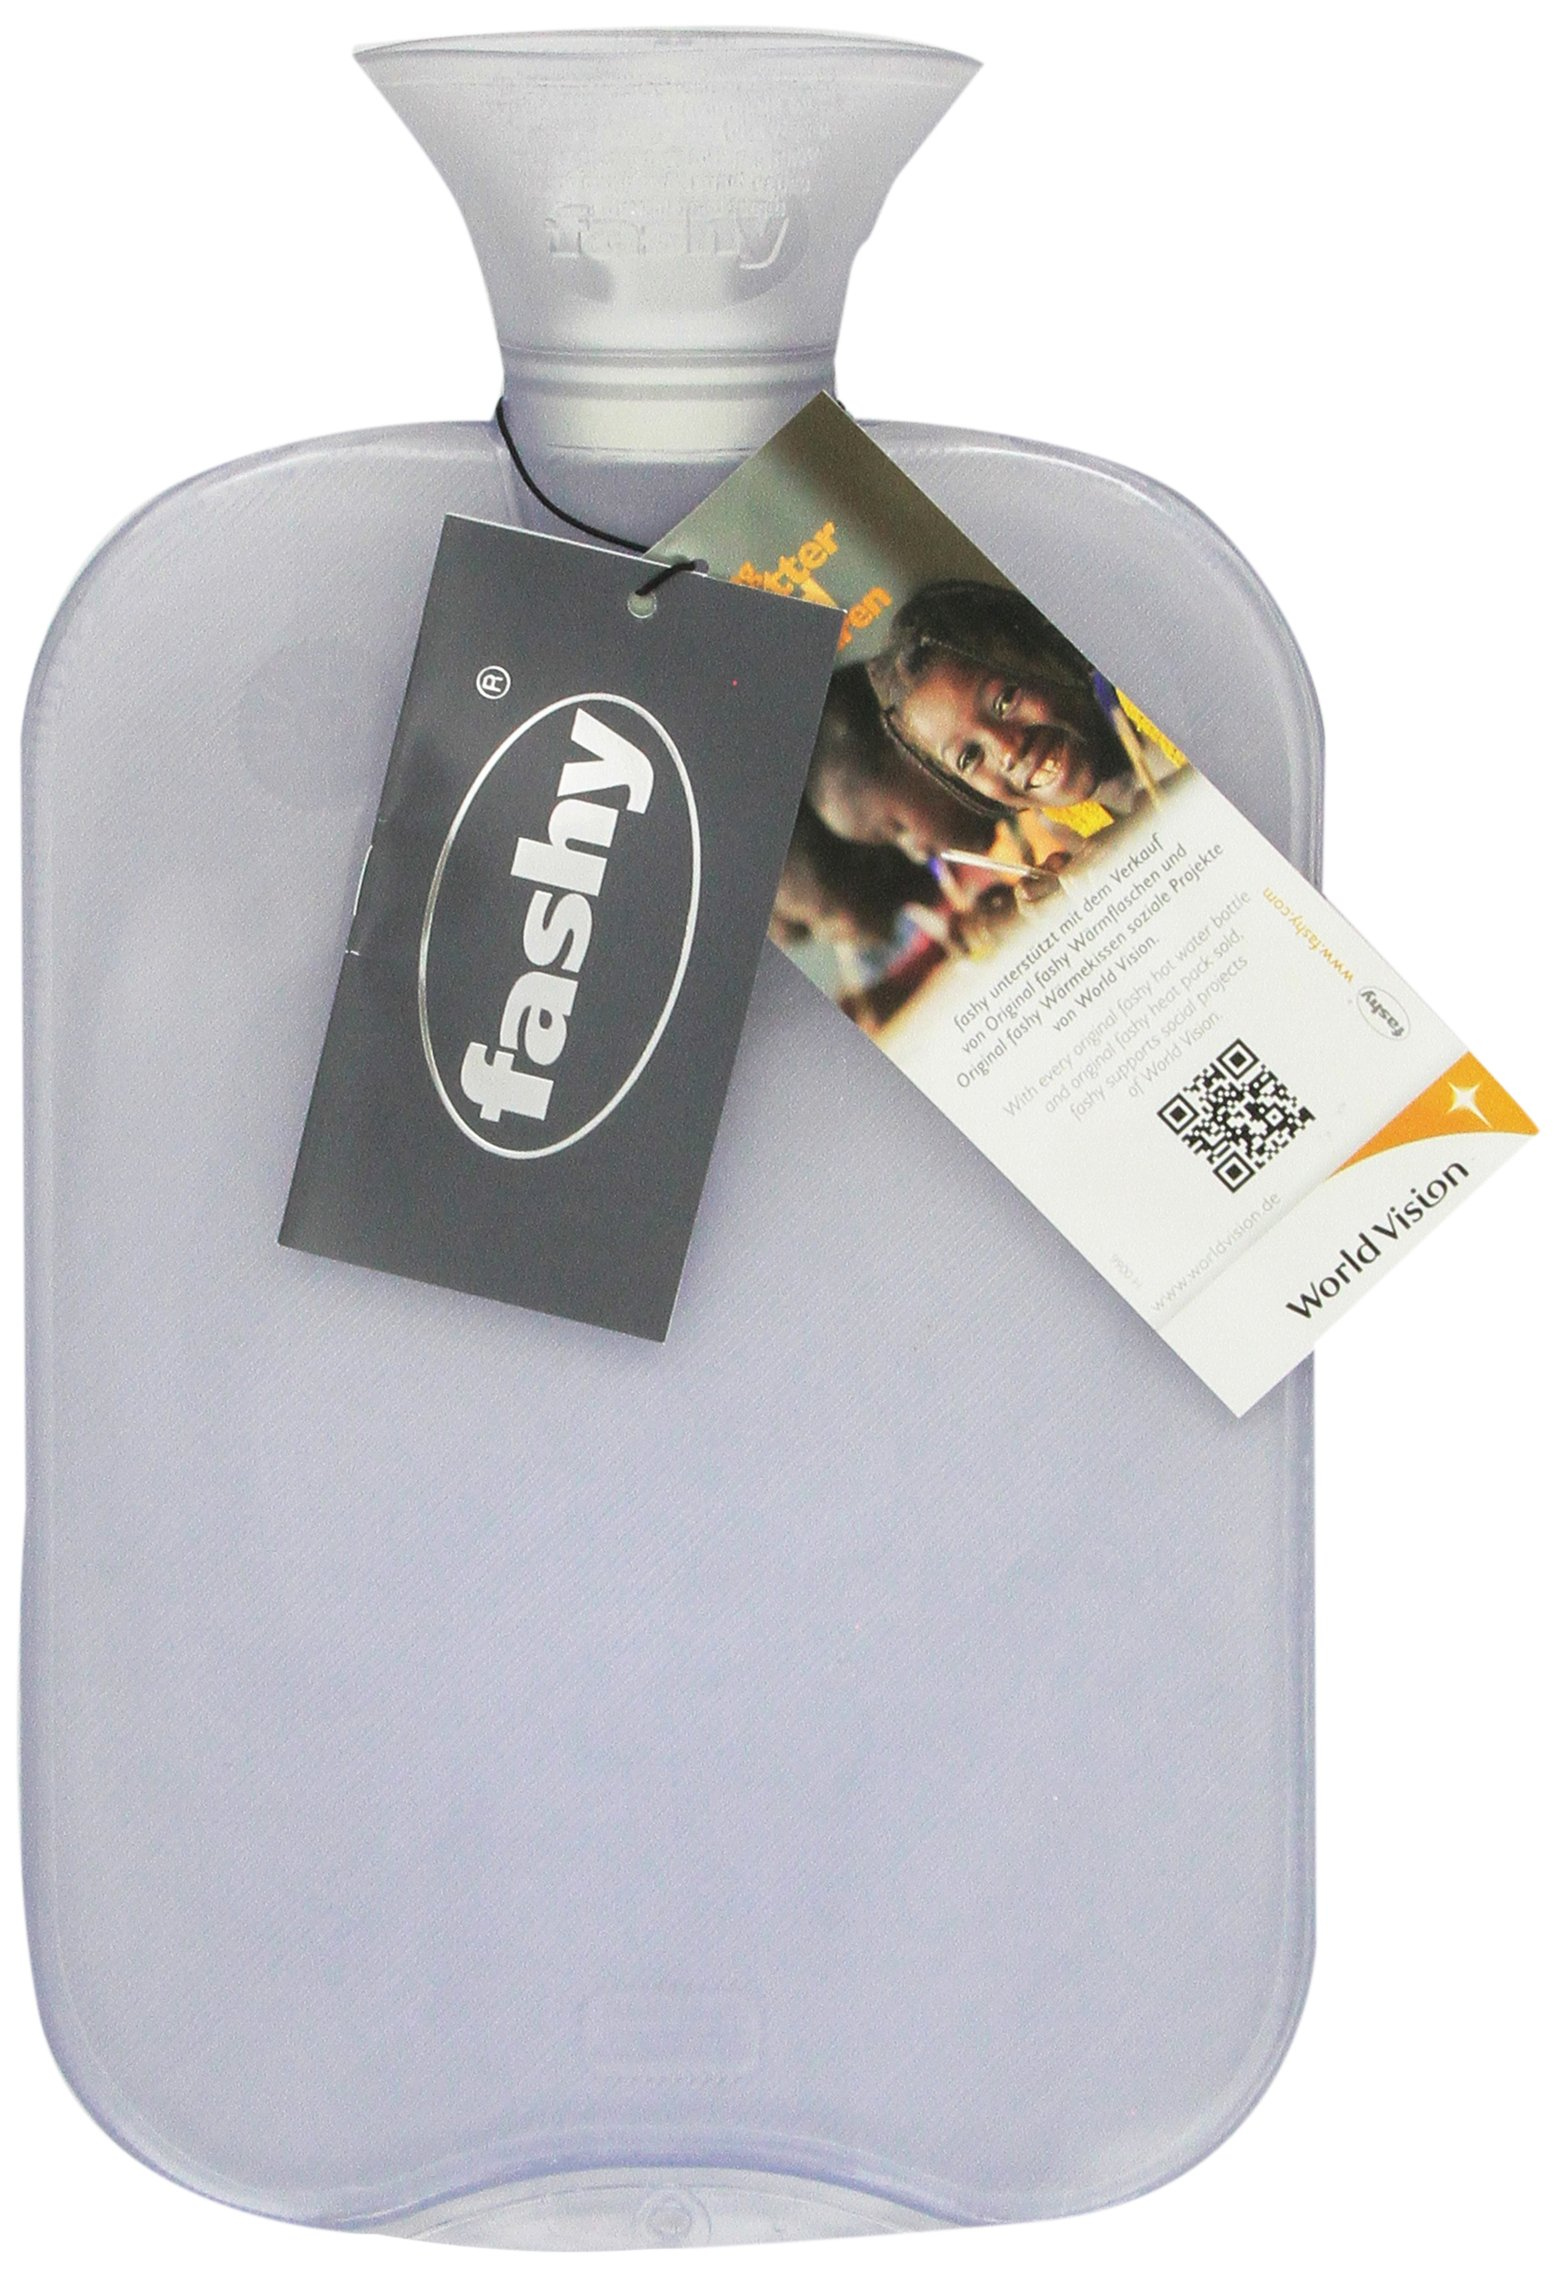 Transparent Classic Hot Water Bottle - Made in Germany by Fashy